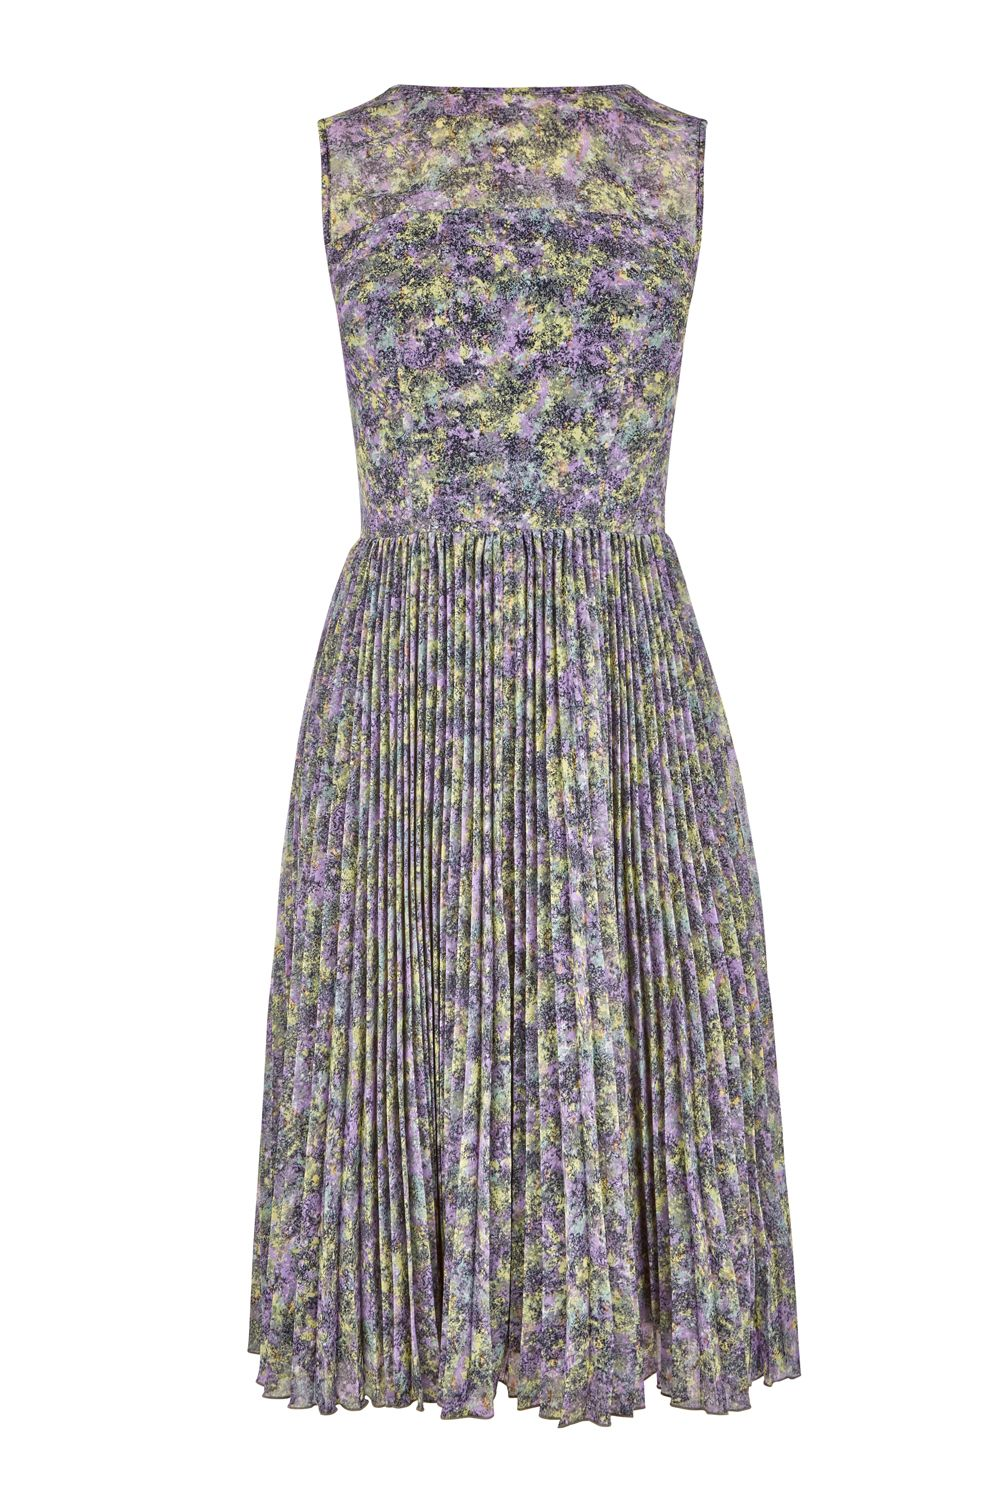 Warehouse Printed Pleated Midi Dress, Multi-Coloured